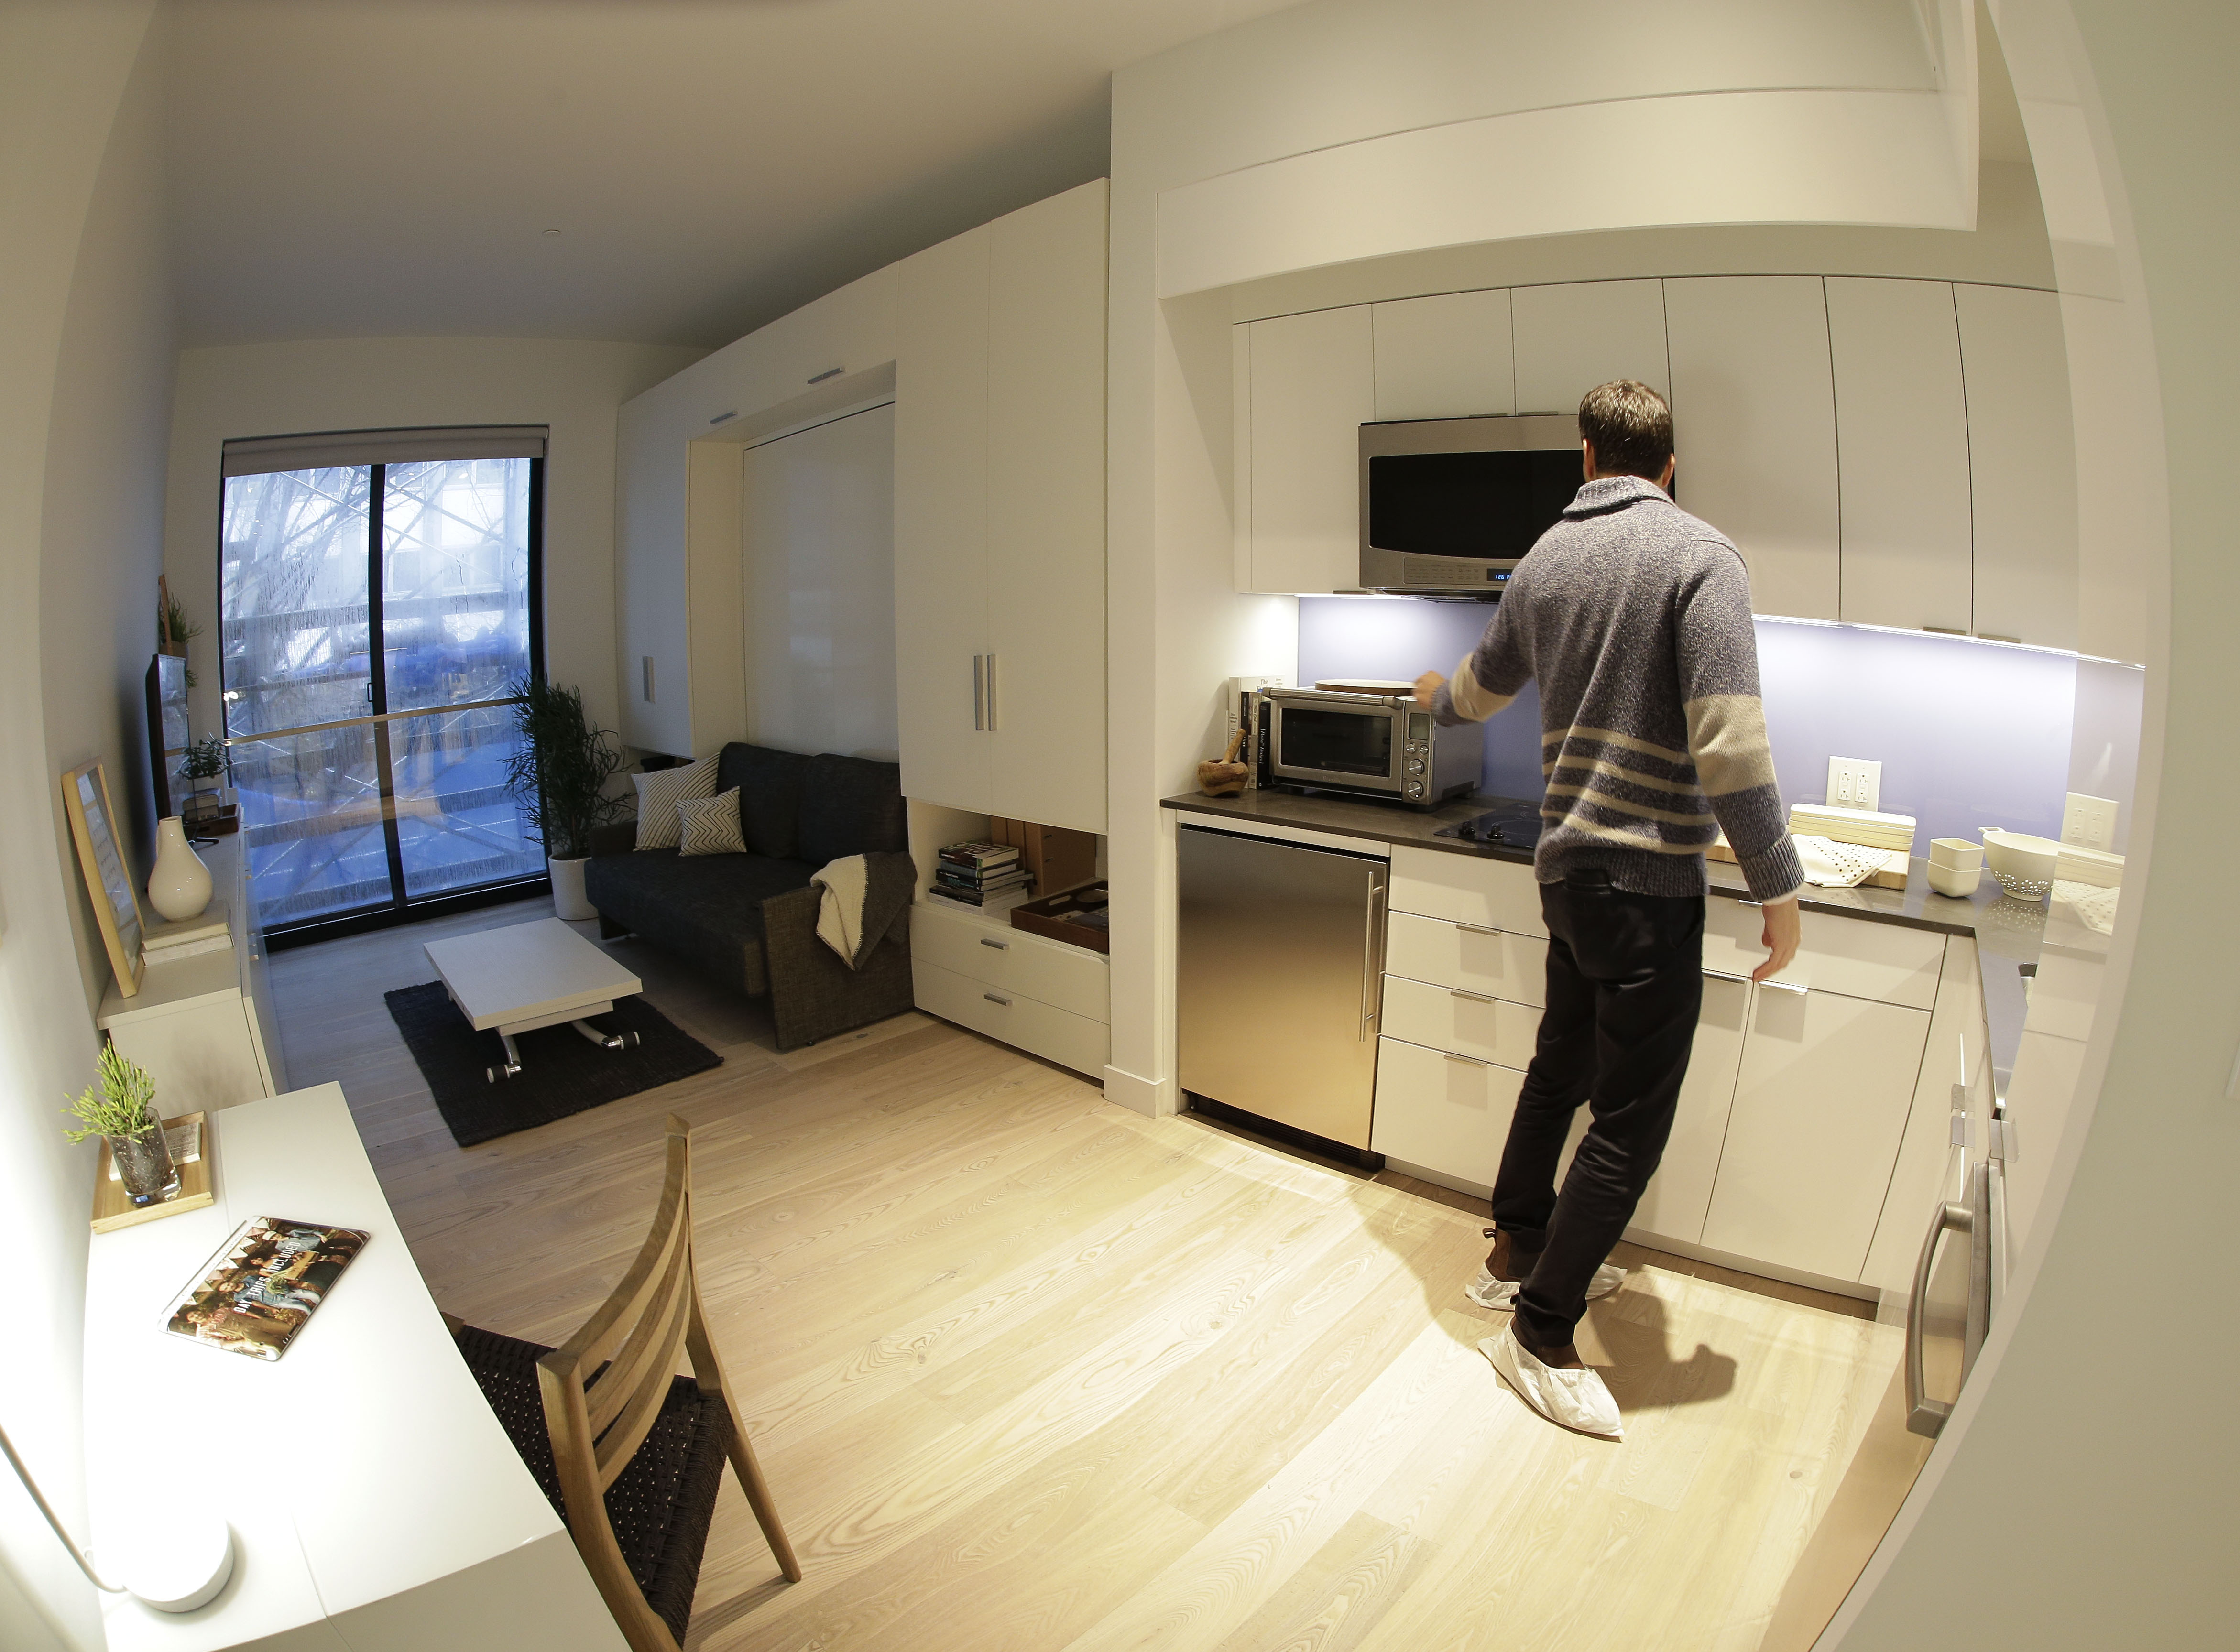 Micro Apartments Design High Tech Millennial Lifestyle Inspires Micro Apartment